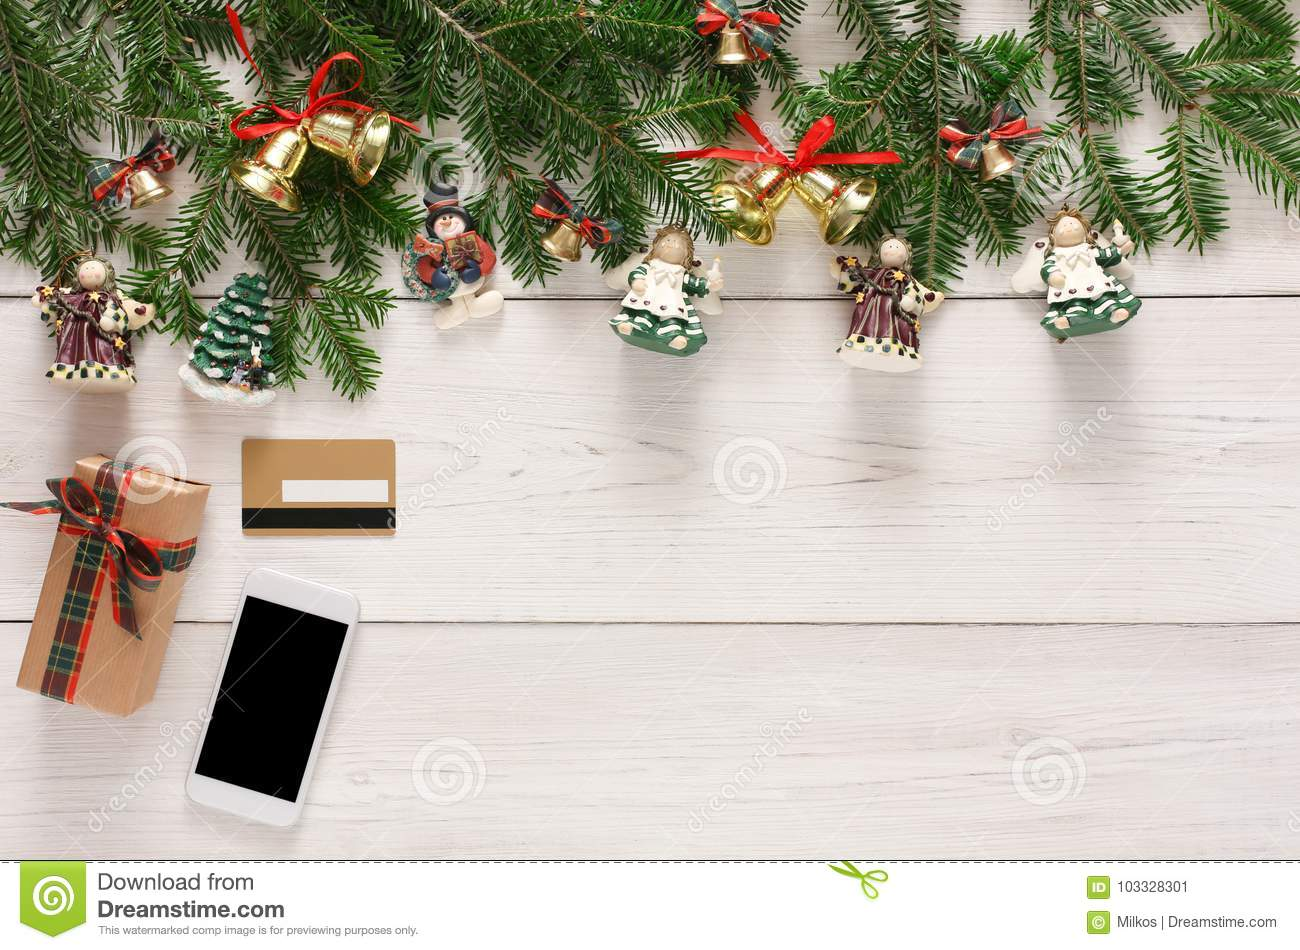 download online paying for christmas decorations background stock image image of stylish mobile